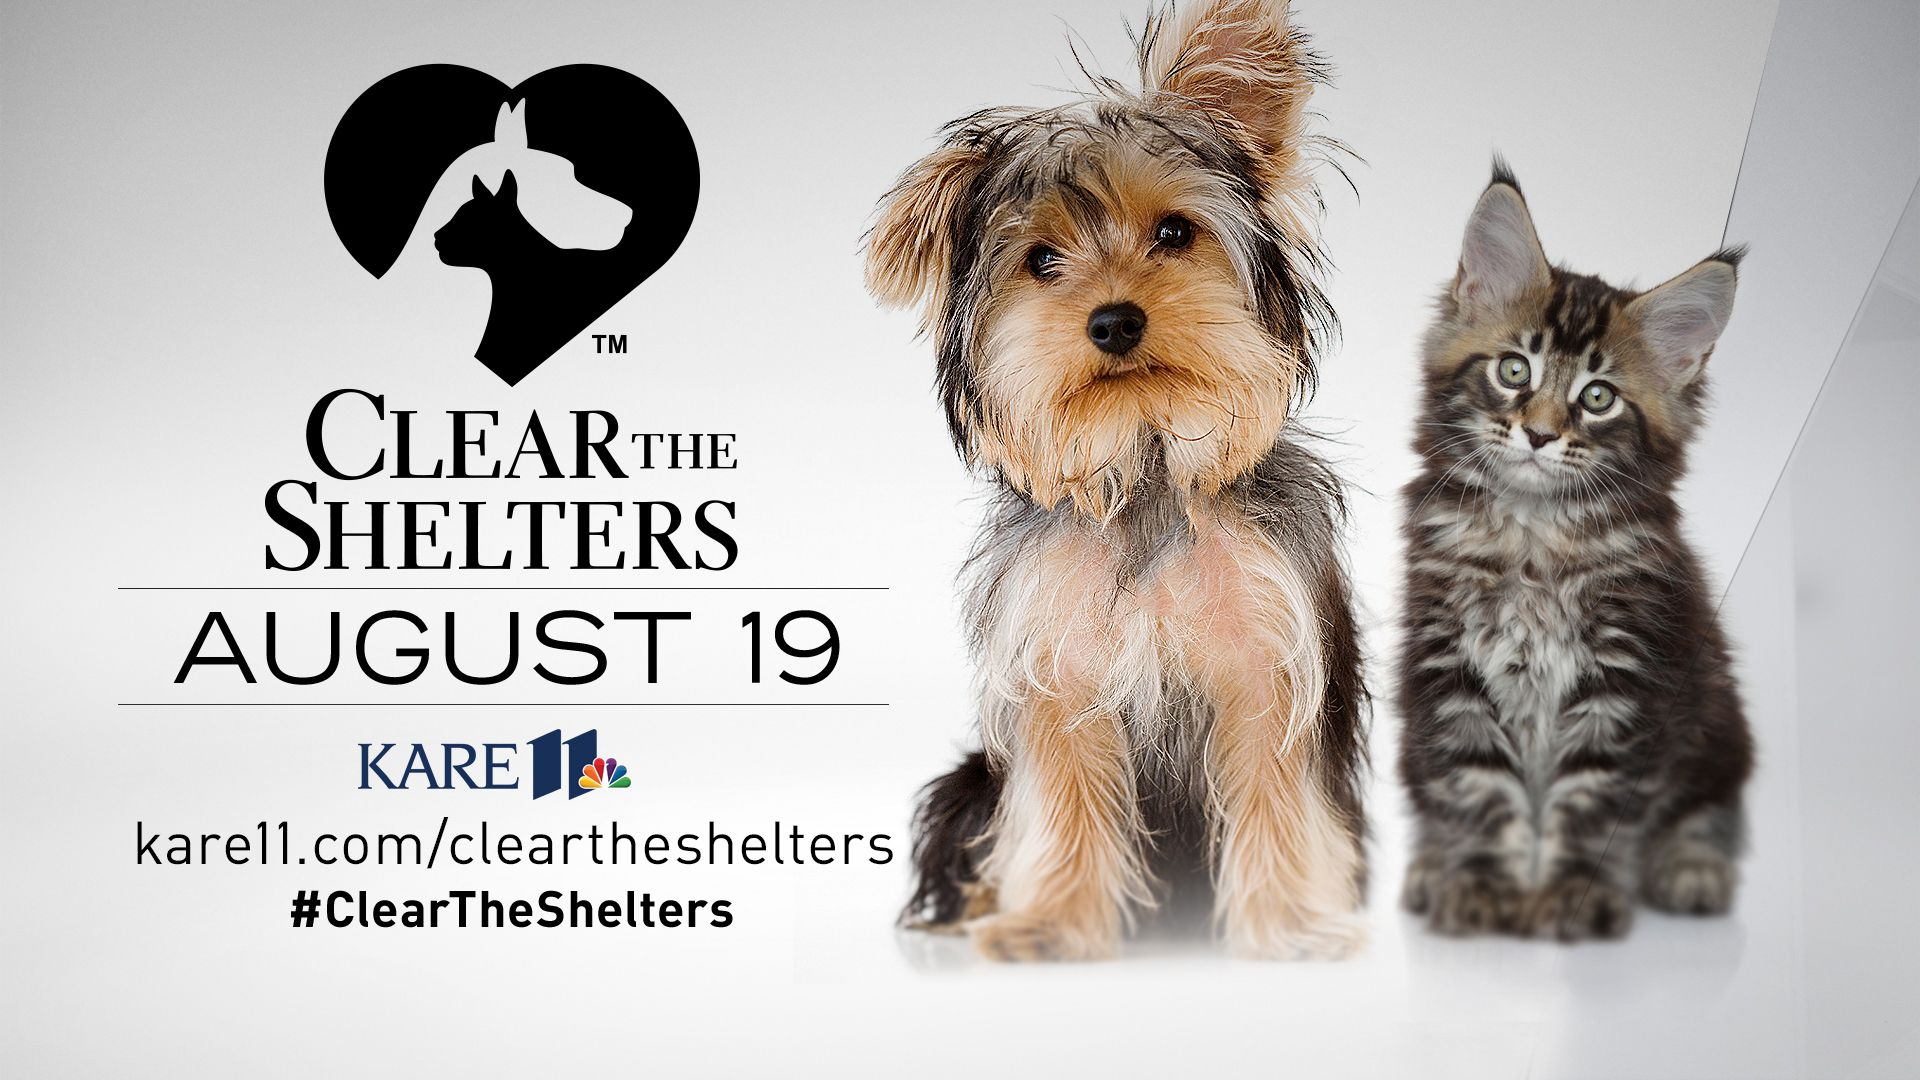 Help 'Clear the Shelters' on August 19 Animal shelter